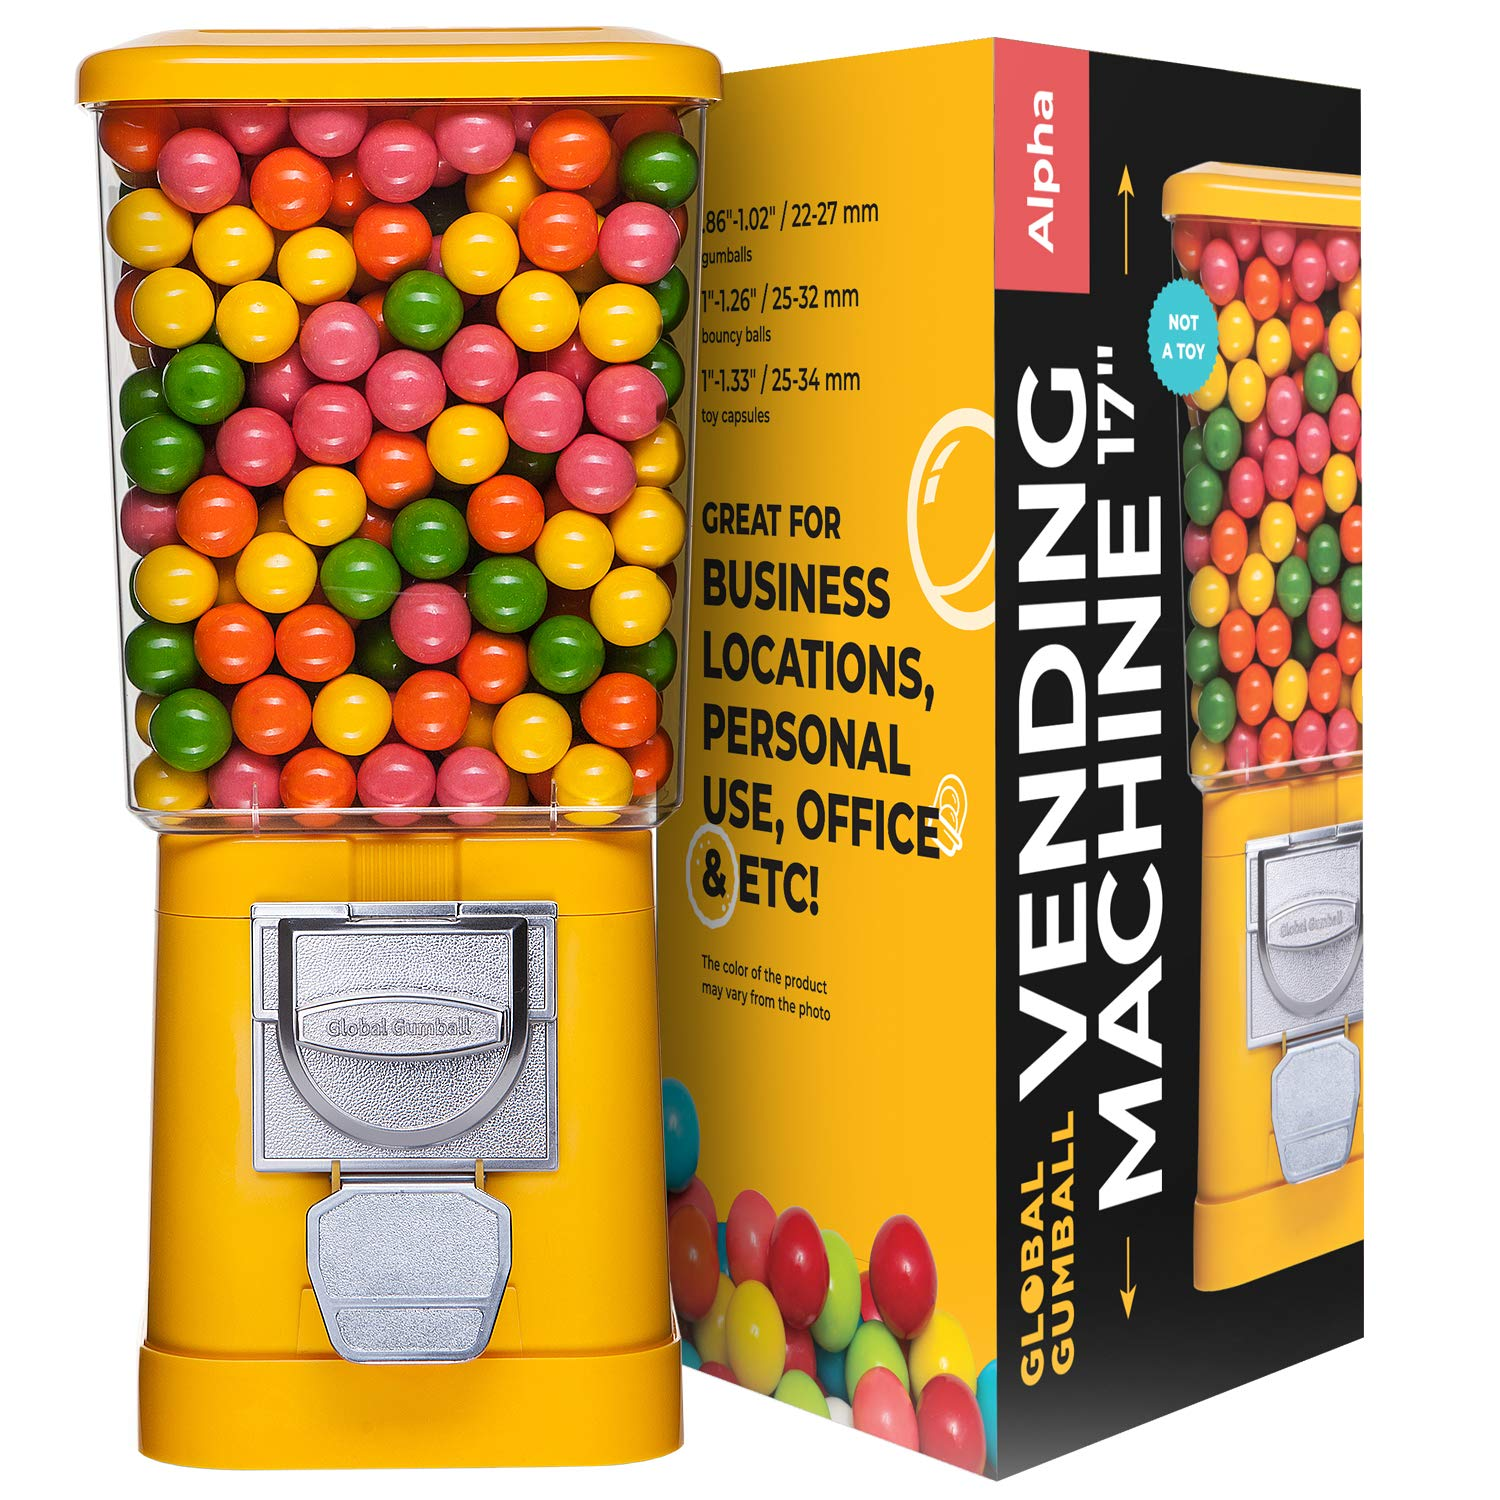 Gumball Machine - Bouncy Balls Vending Machine - Toys Vending Machine - Capsule Vending Machine - Yellow - Without Stand